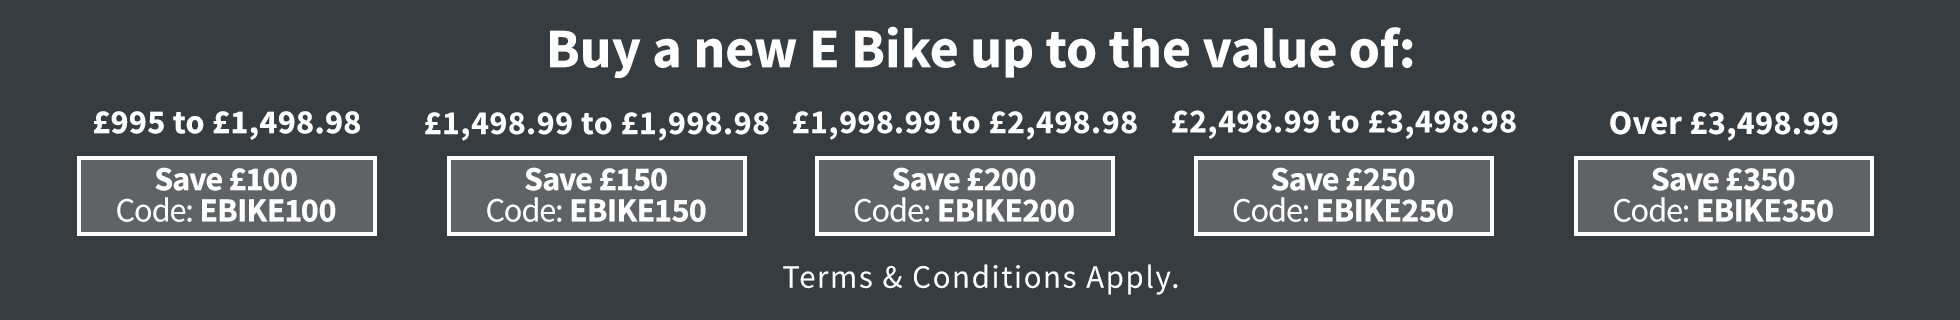 Save up to £350